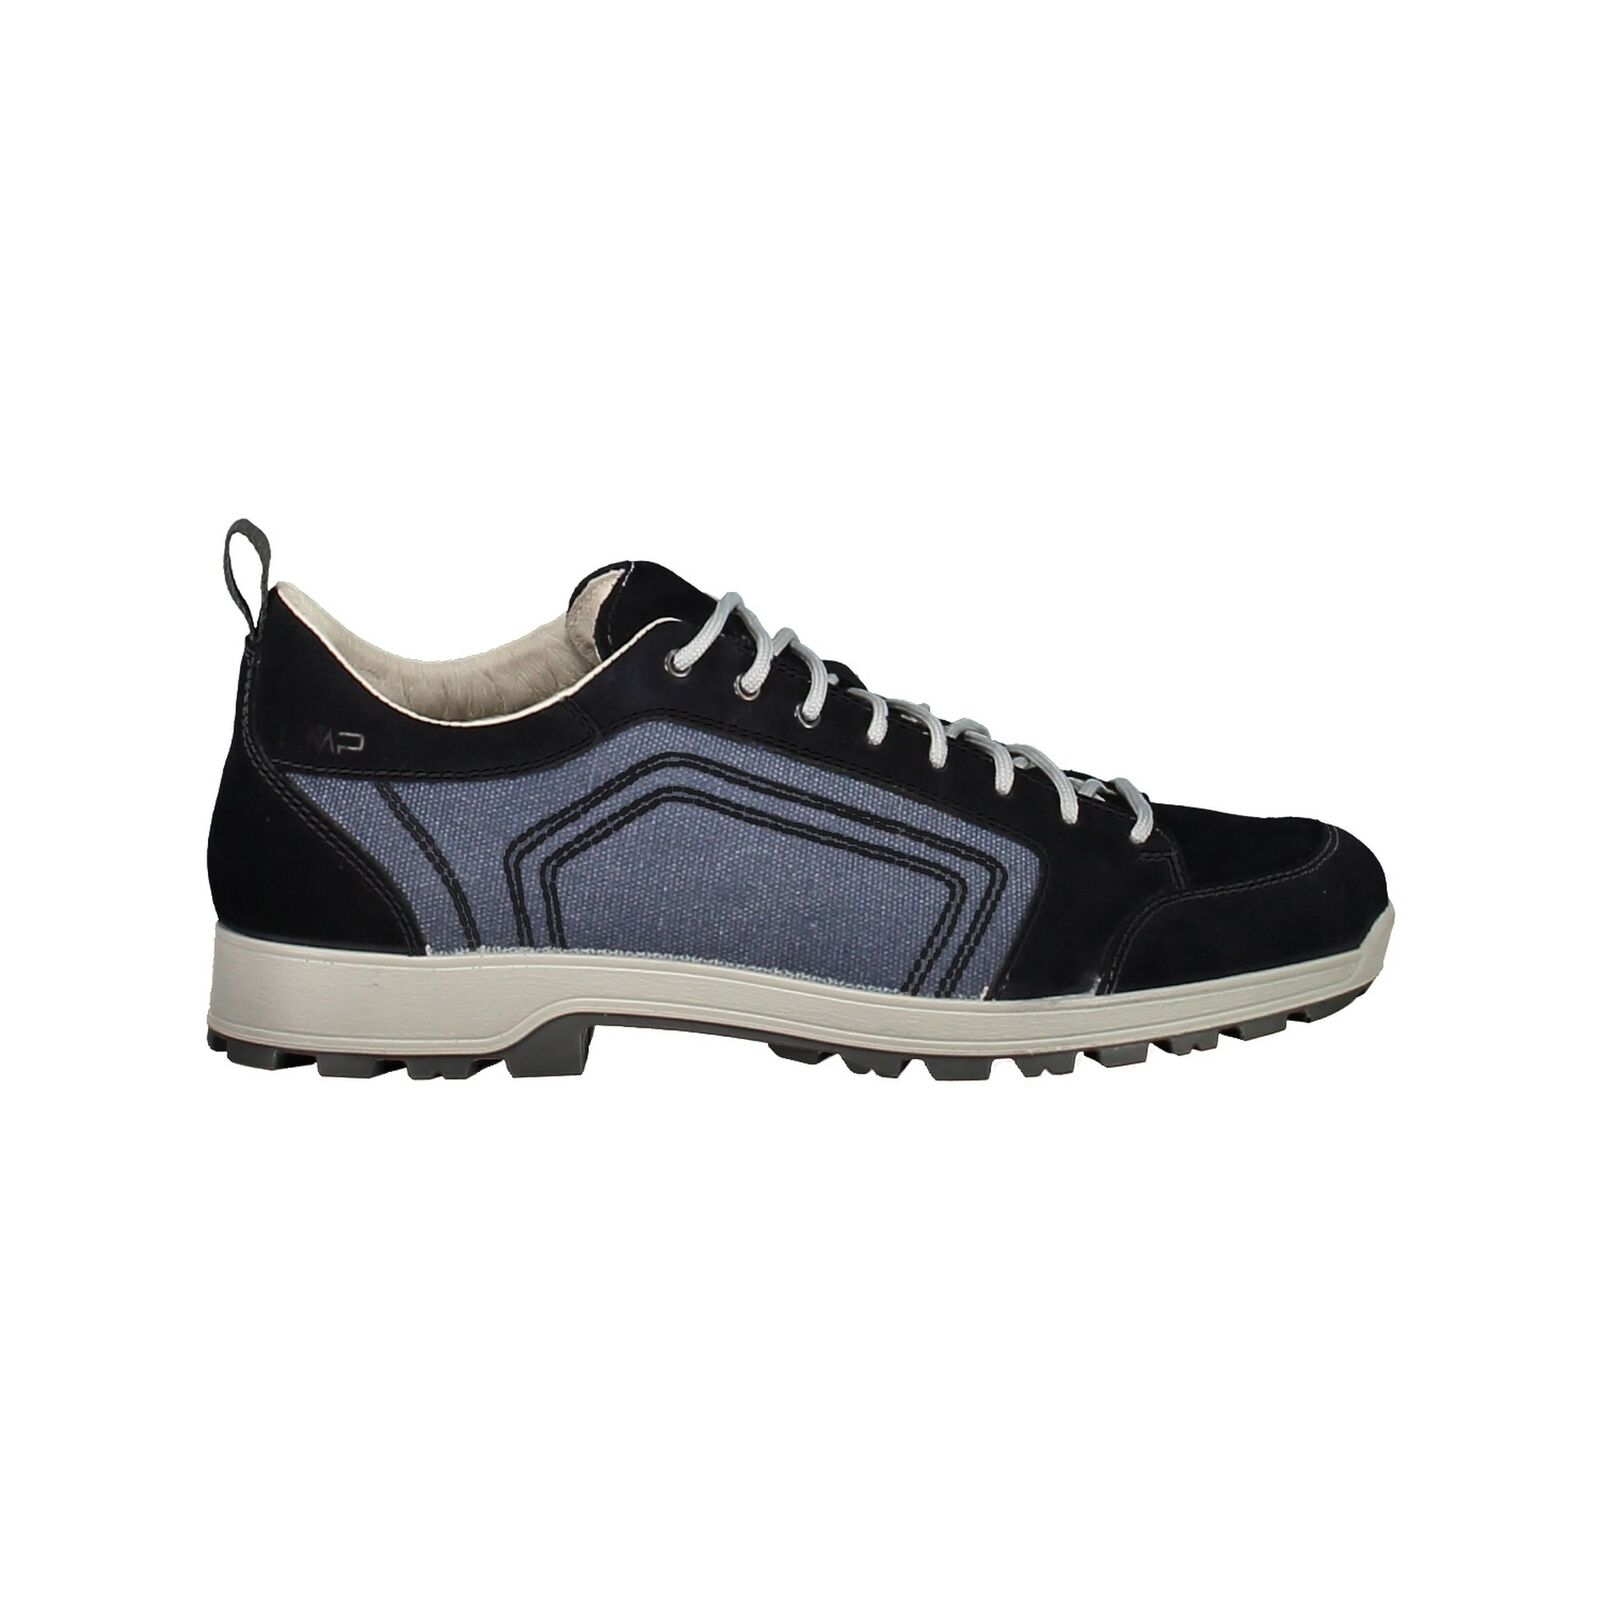 CMP Wanderschuhe Outdoorschuh Atik Canvas  Hiking shoes dunkelblue leicht Canvas  fast delivery